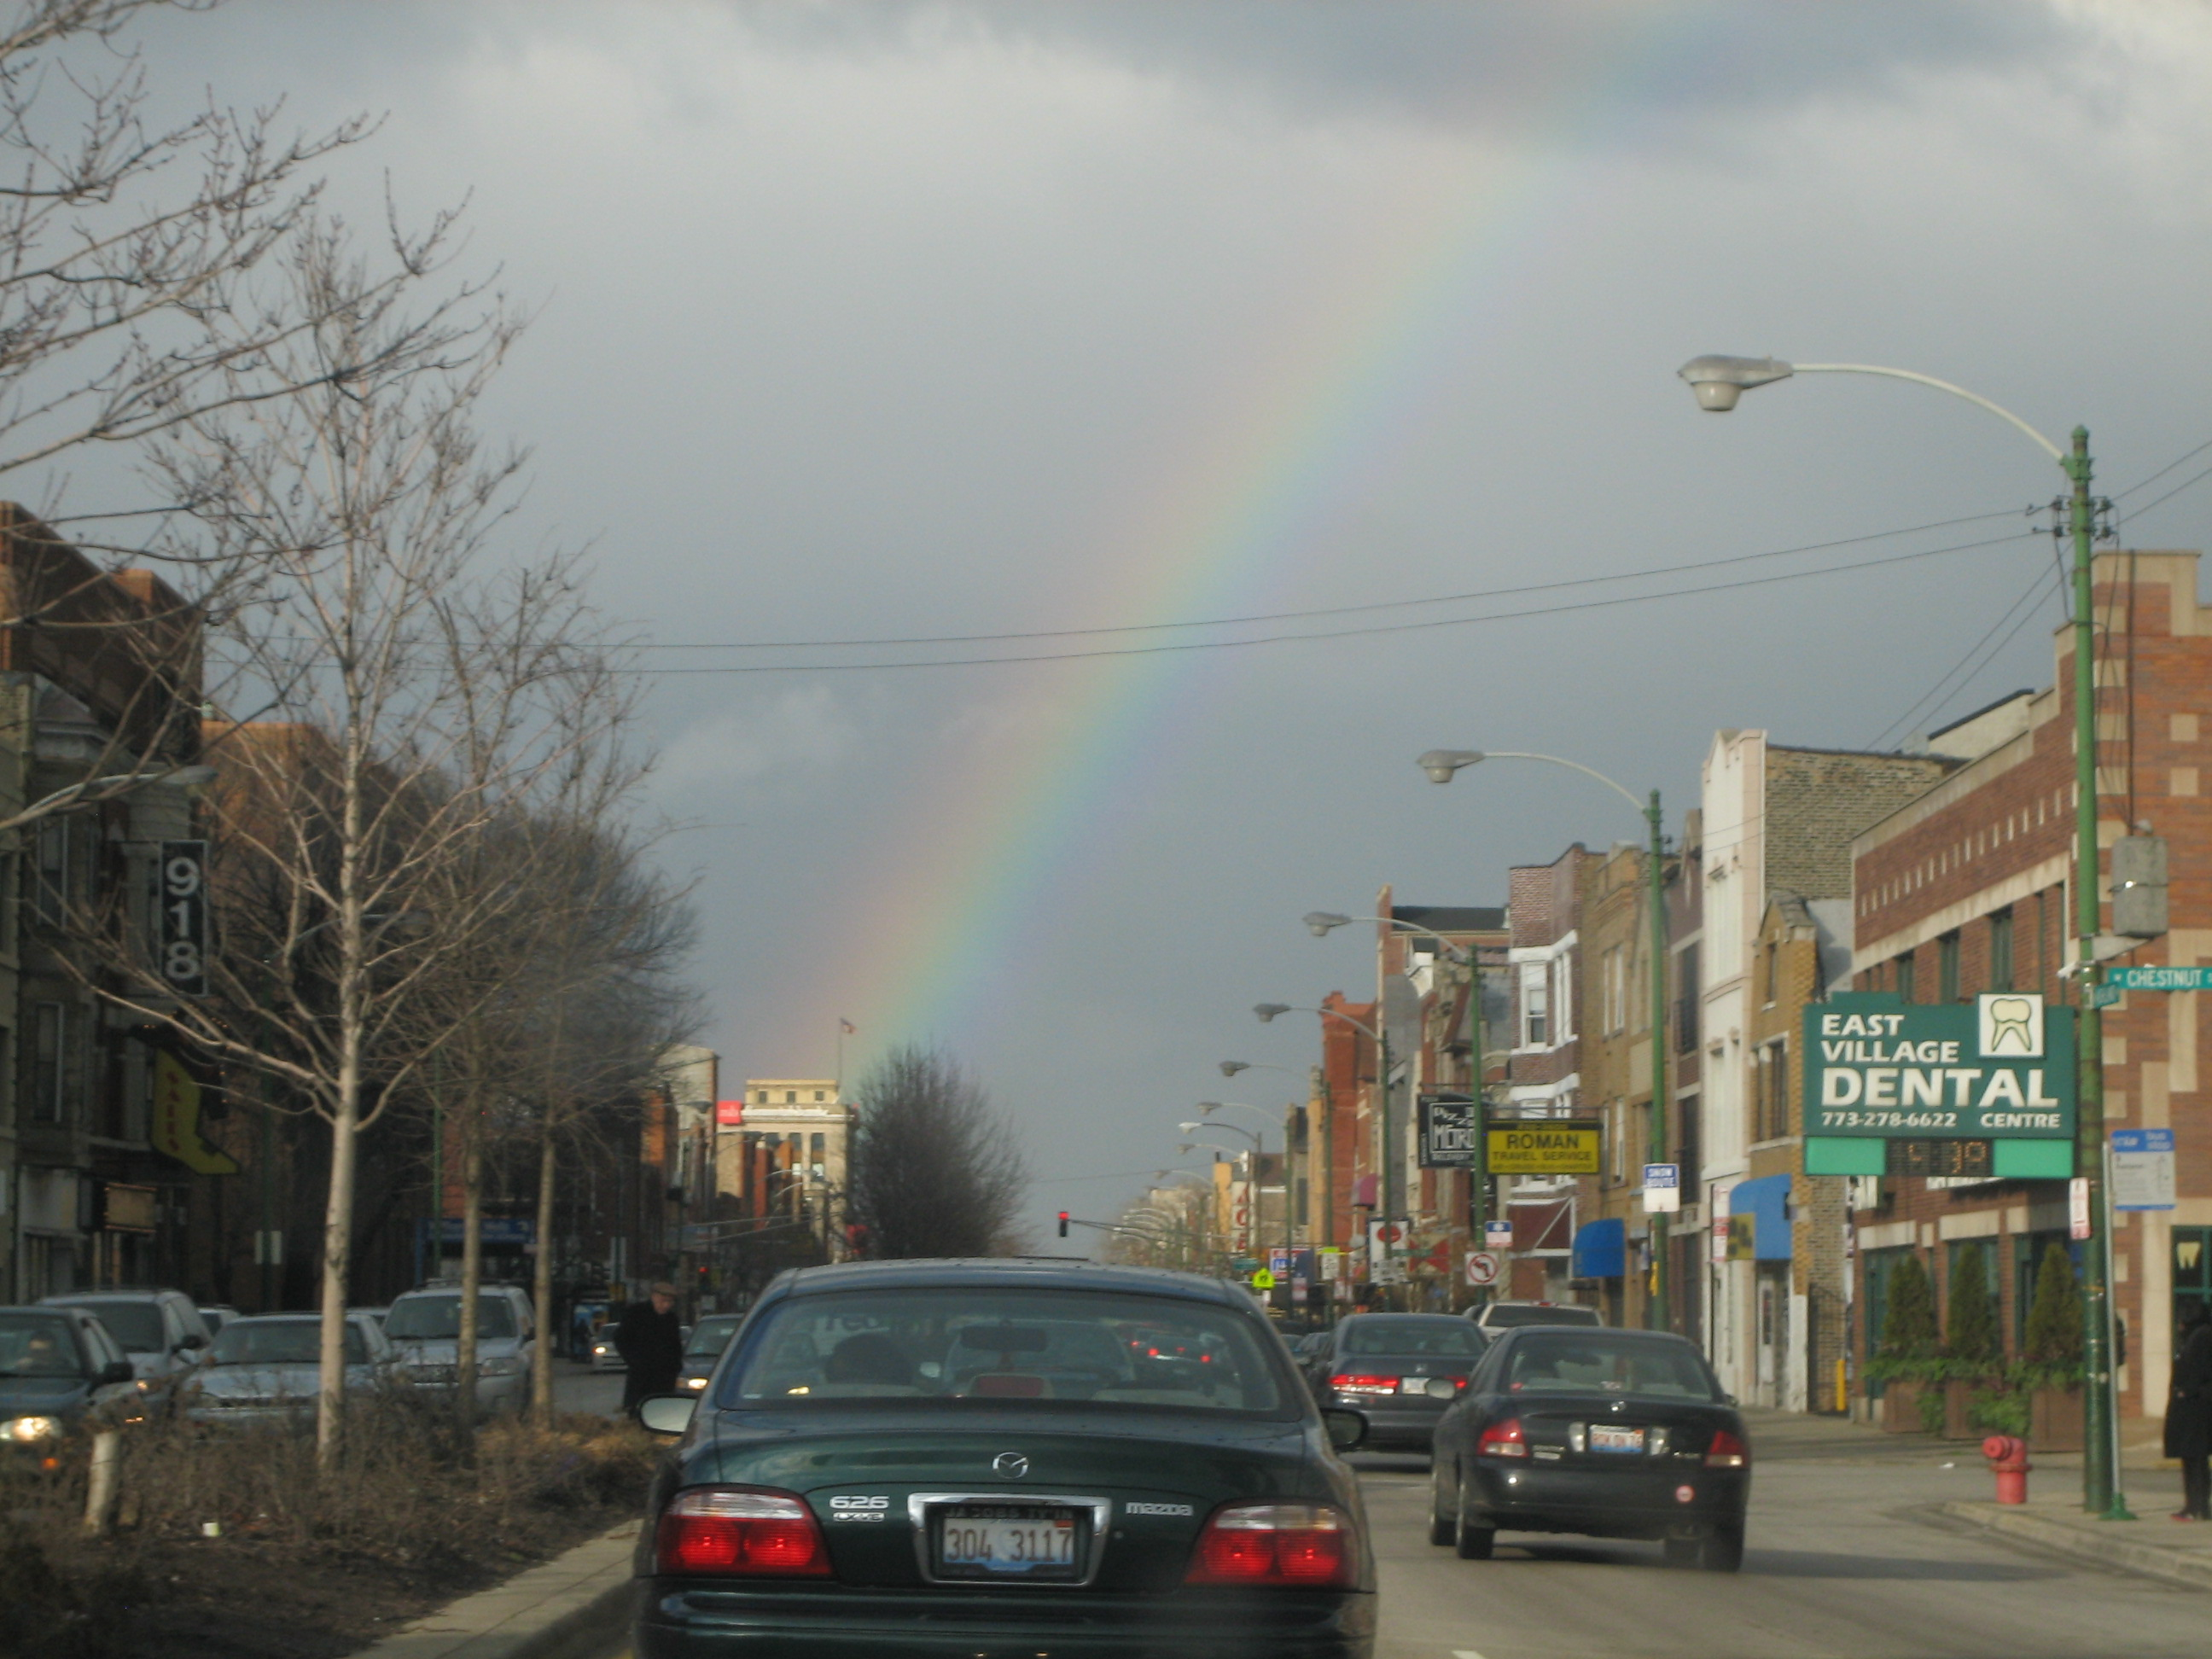 Somewhere over the rainbow in Chicago's East Village neighborhood